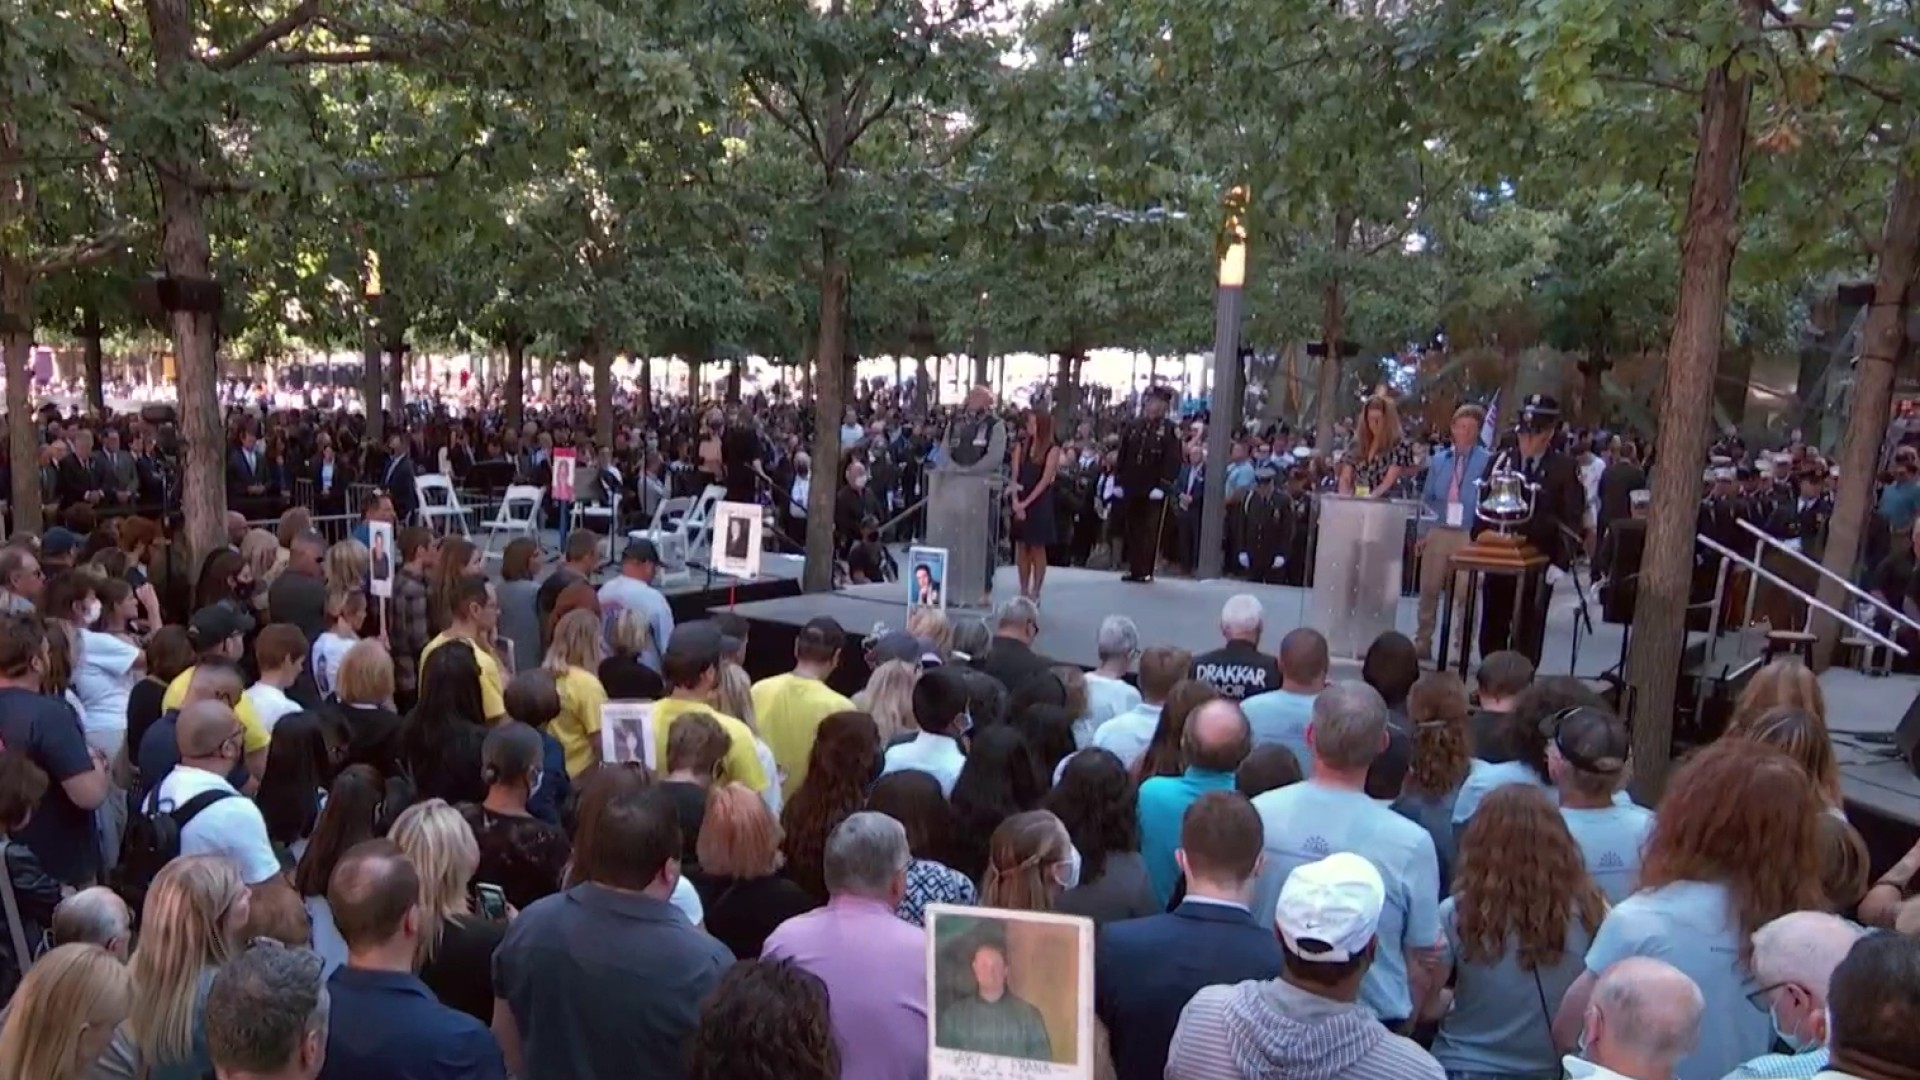 Moment of silence marking when United Flight 175 struck south tower